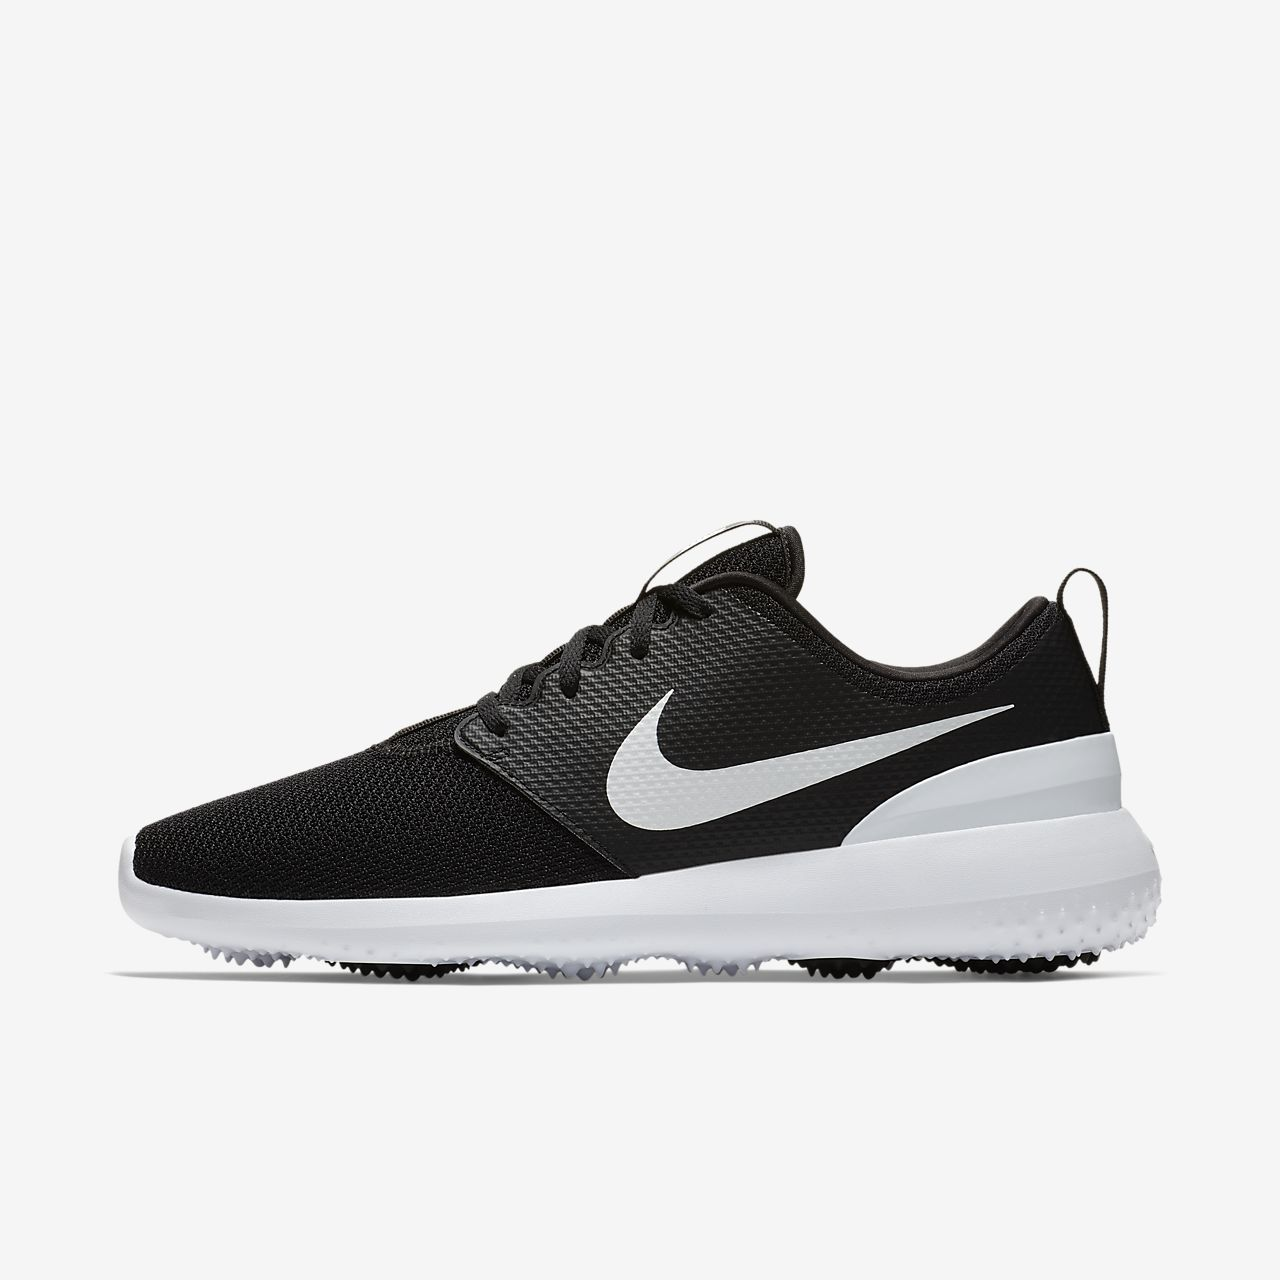 925f1fe2984f Nike Roshe G Men s Golf Shoe